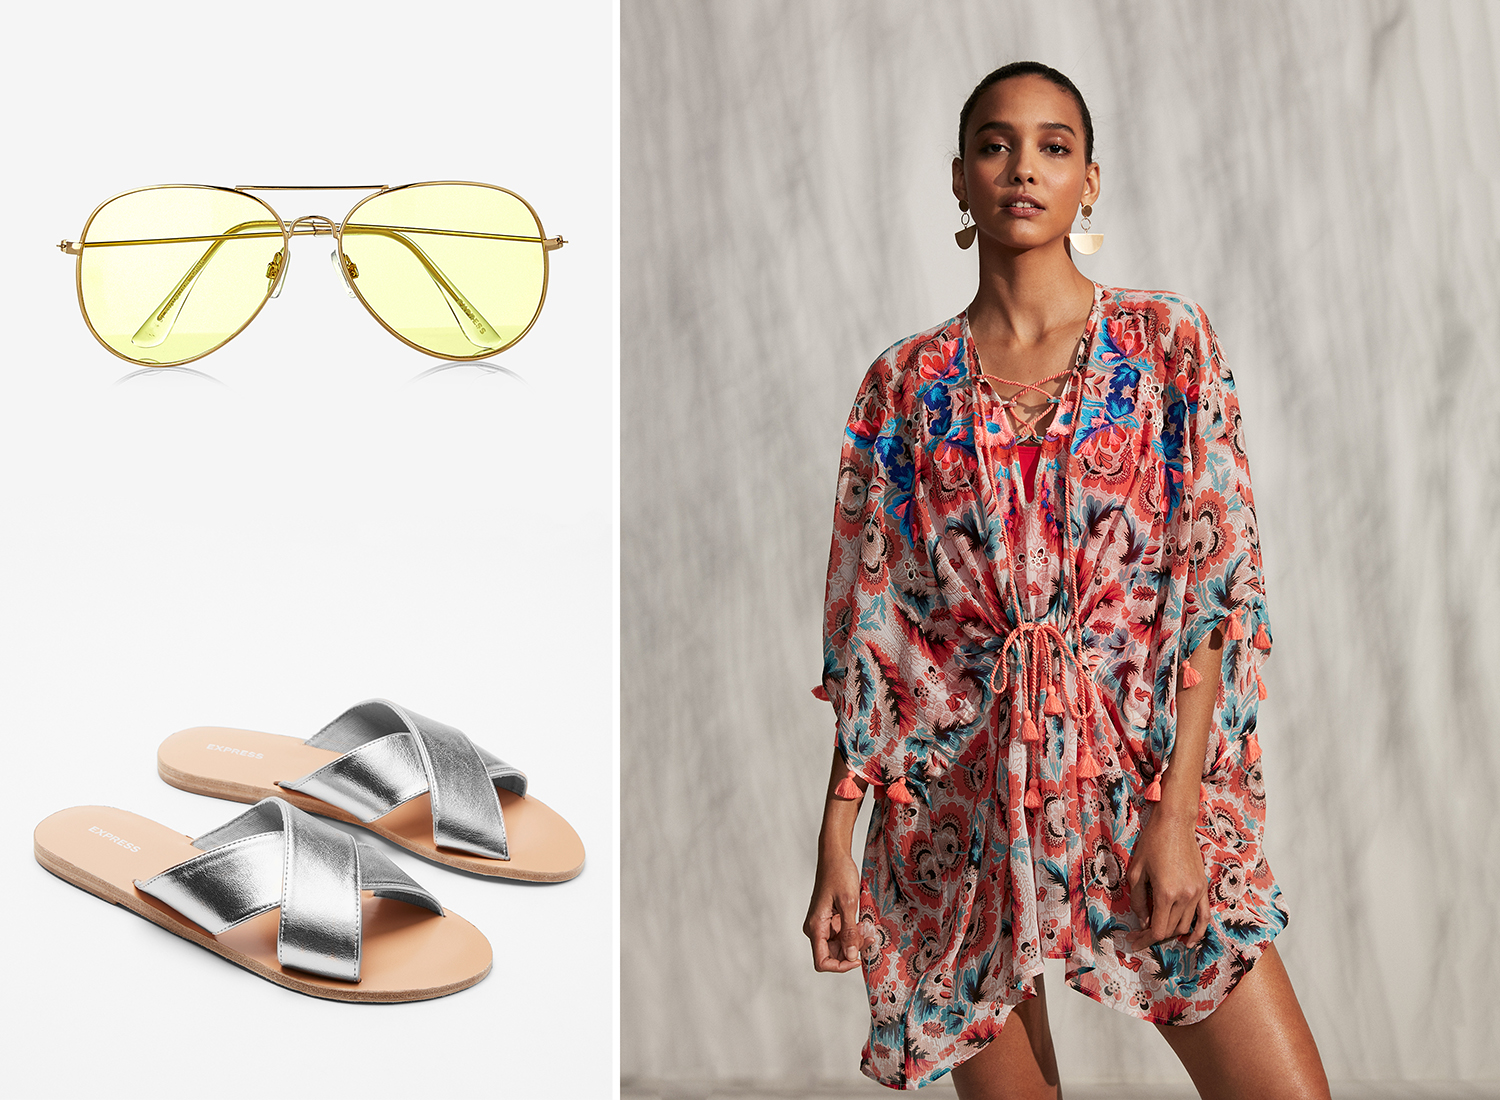 embroidered-floral-front-cover-up-aviators-criss-cross-sandals